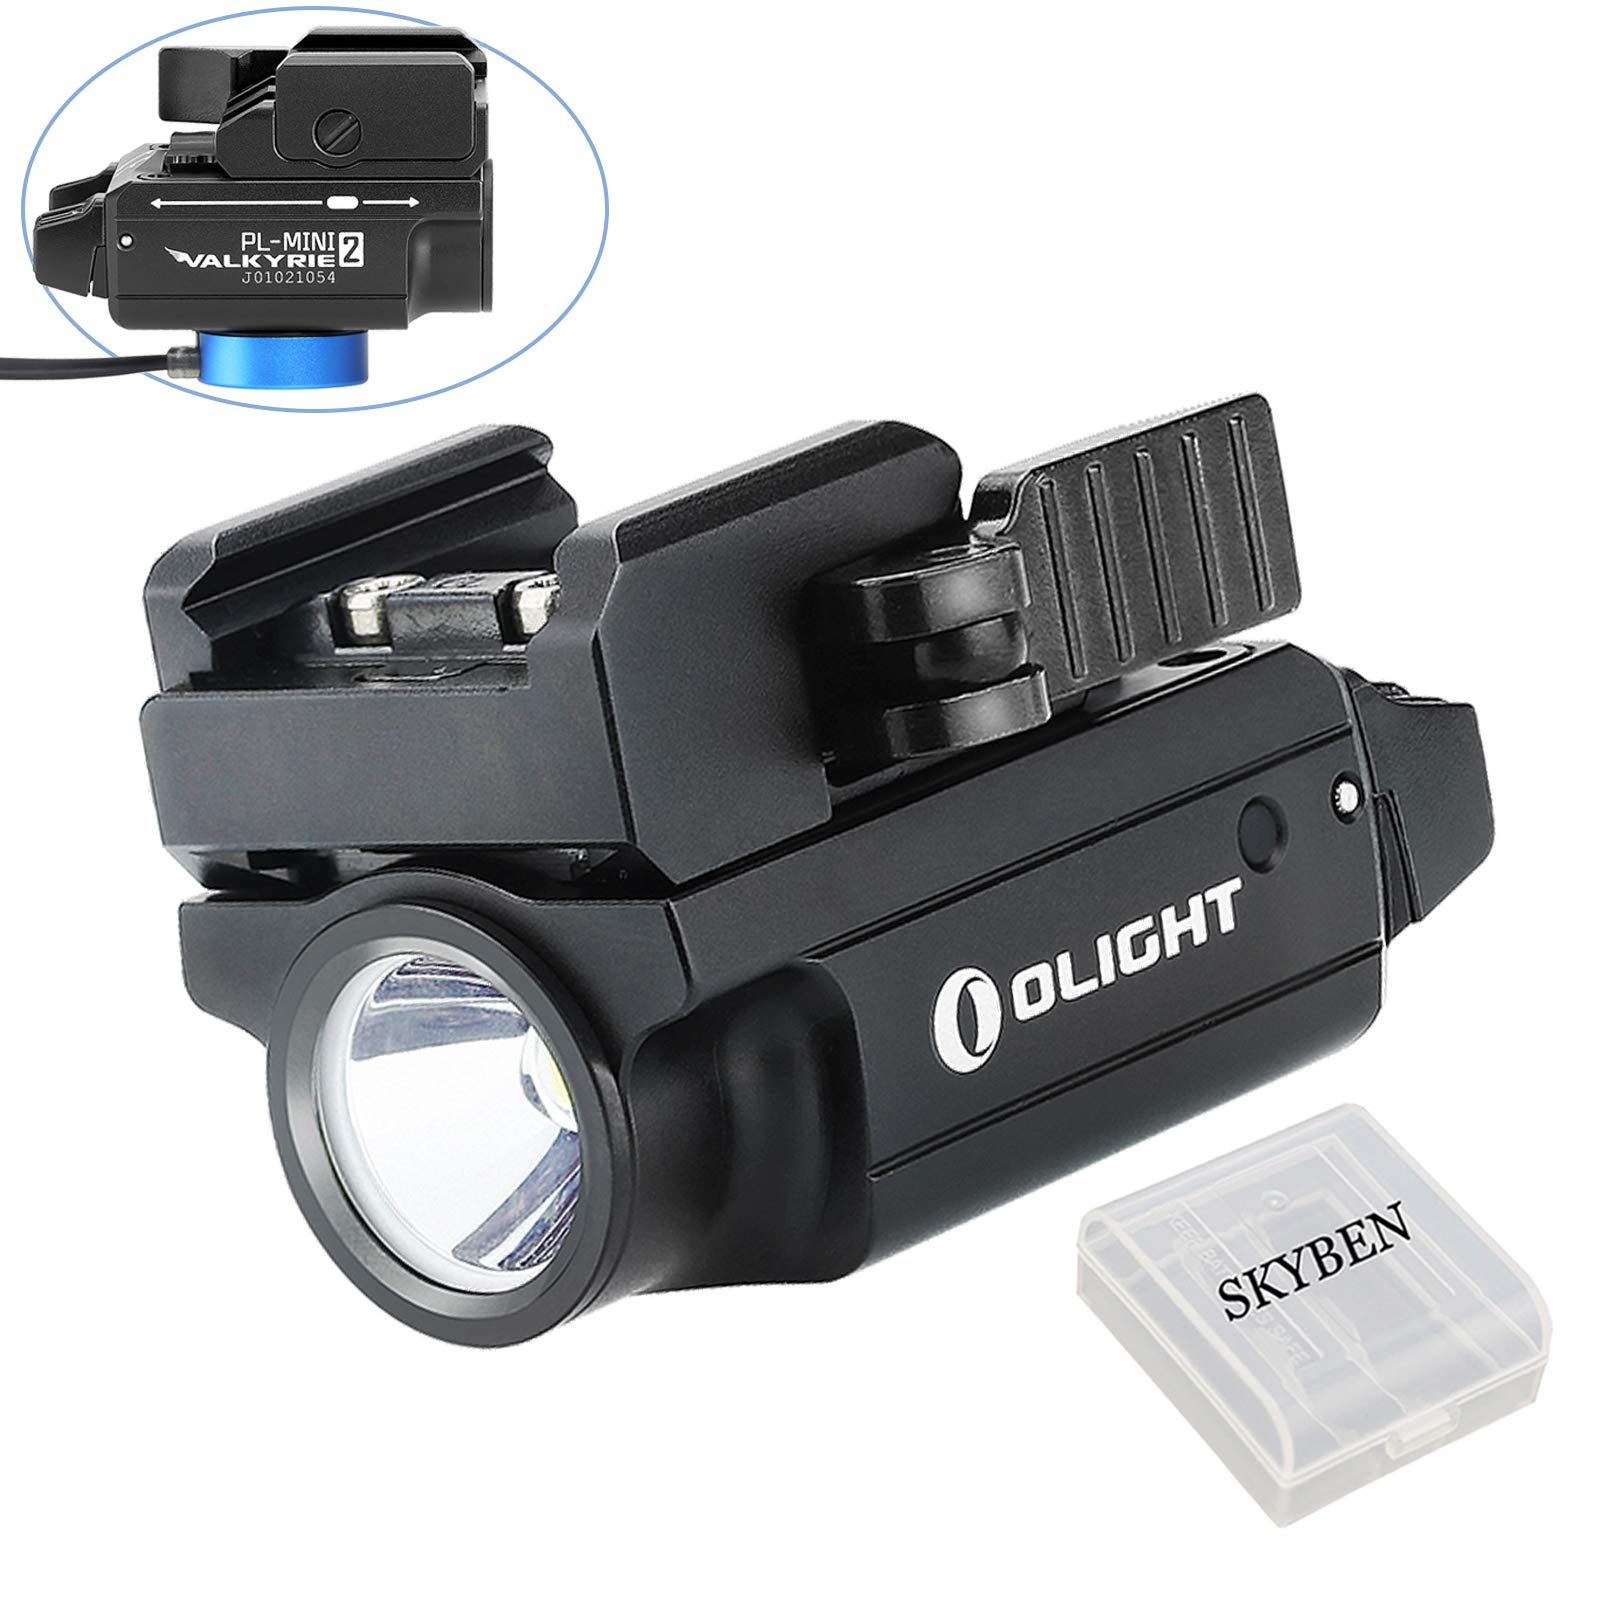 Olight PL-MINI 2 Valkyrie 600 Lumens Cree XP-L HD CW LED Modular Weaponlight Magnetic Rechargeable with Adjustable Rail,Powered by a Built-in Polymer Battery (Black)